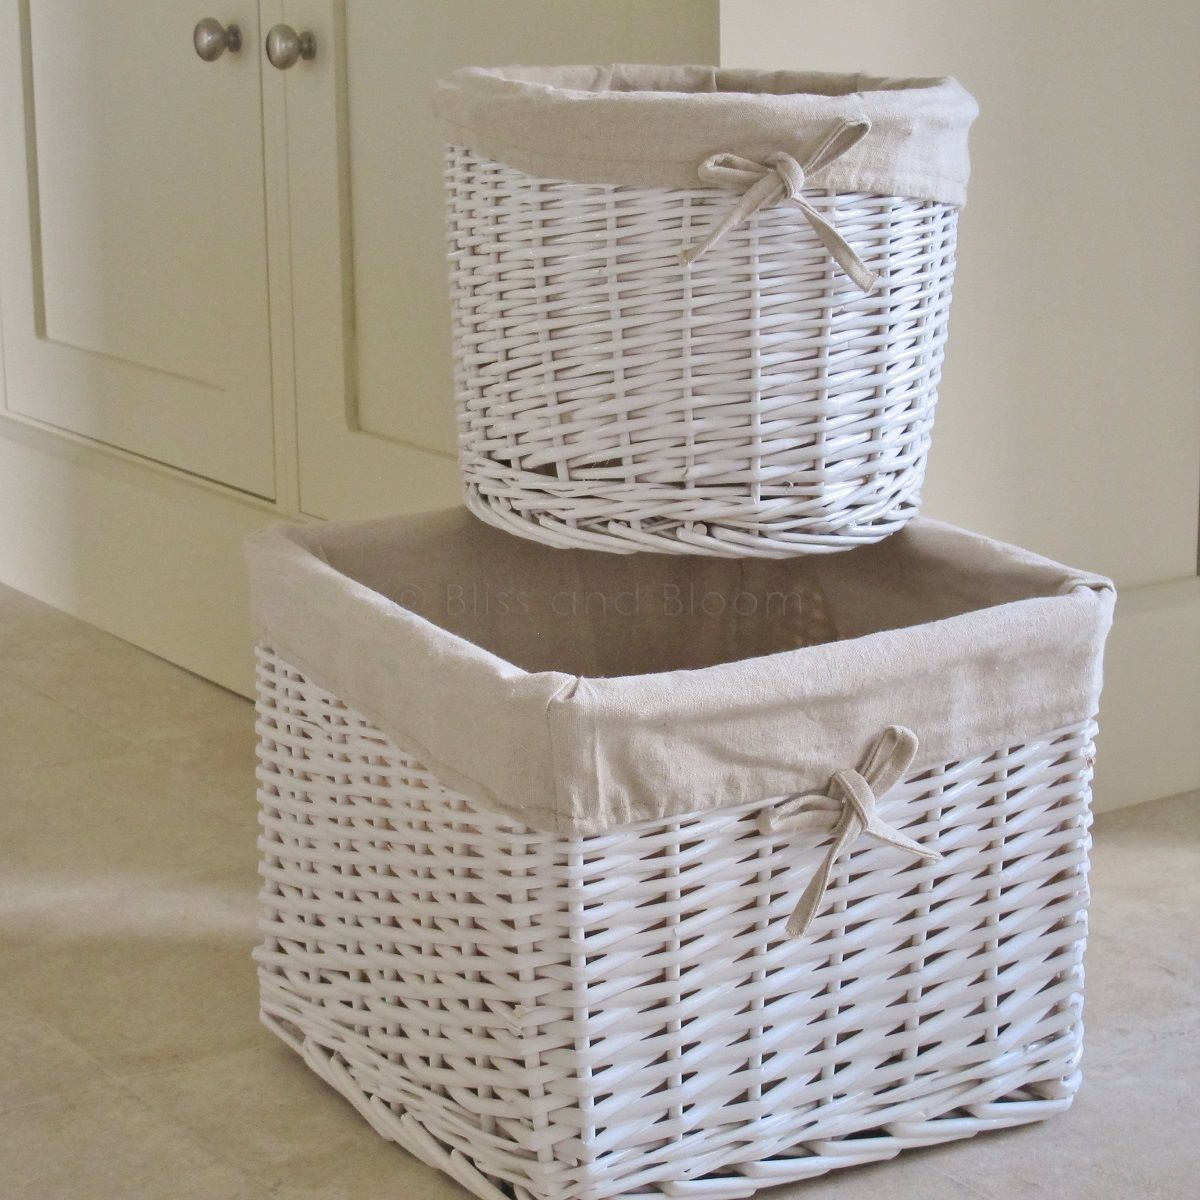 2 White Storage Basket Bins Bliss And Bloom Ltd